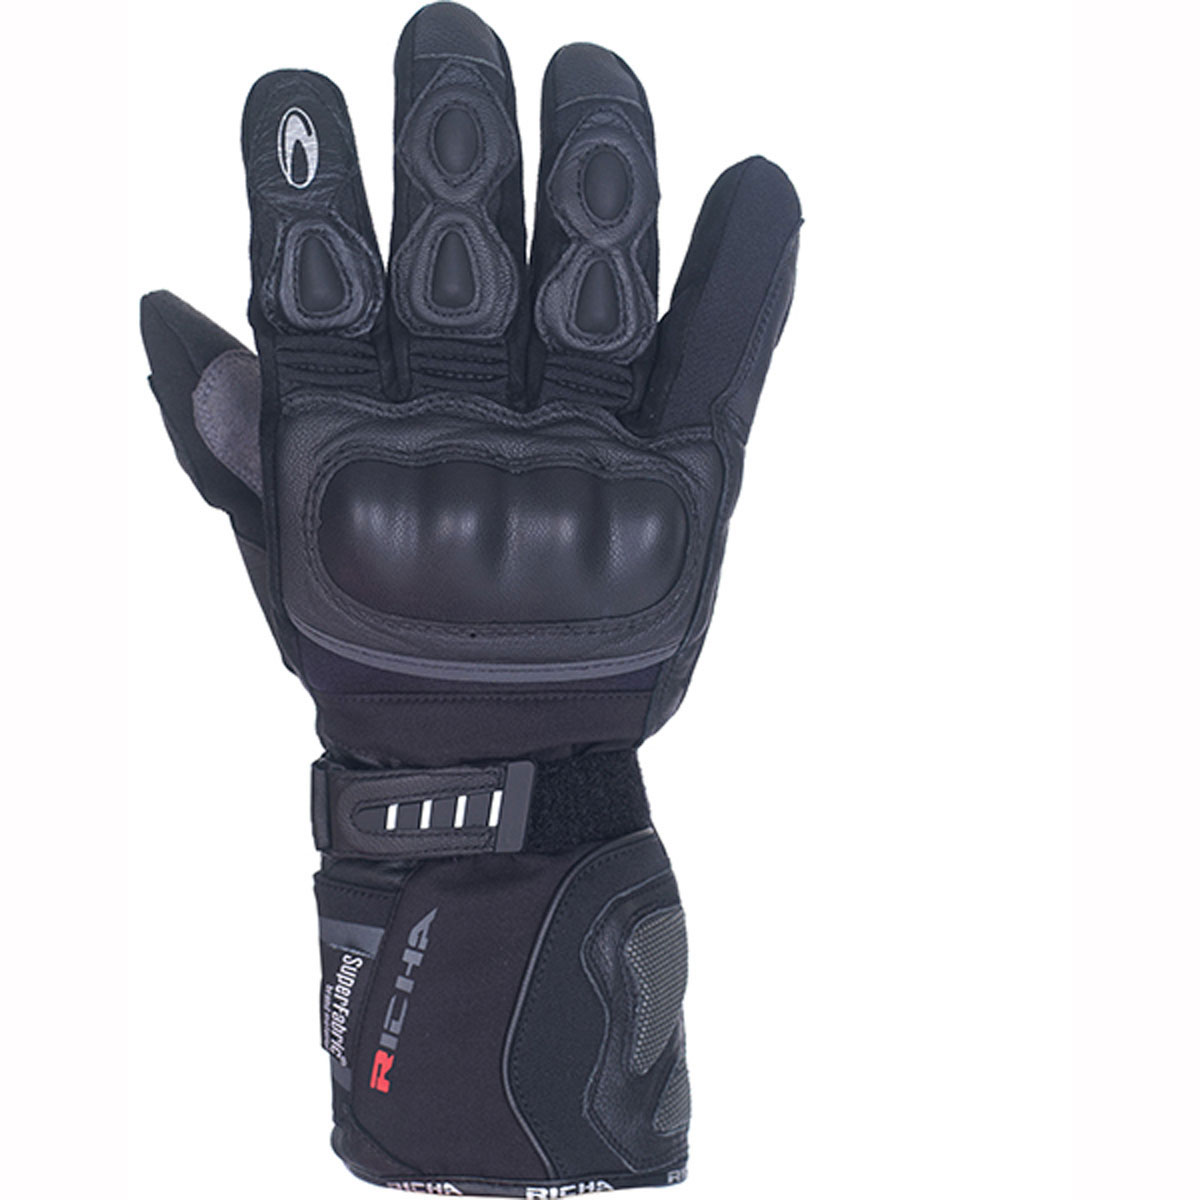 The Richa Arctic Gloves